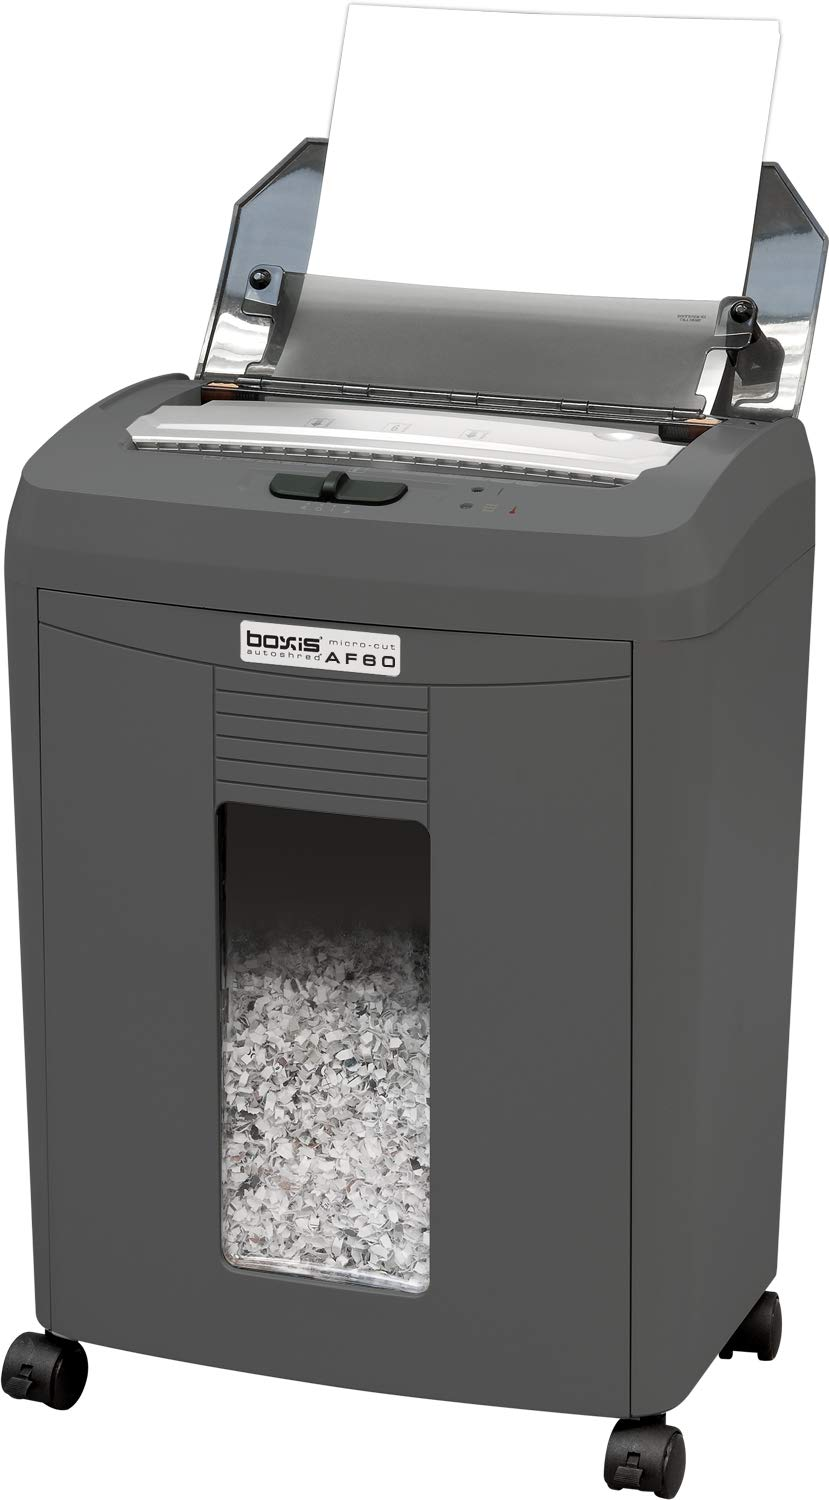 Boxis AF80 AutoShred 80-Sheet Micro Cut Paper Shredder ... (80-Sheet) by BOXIS